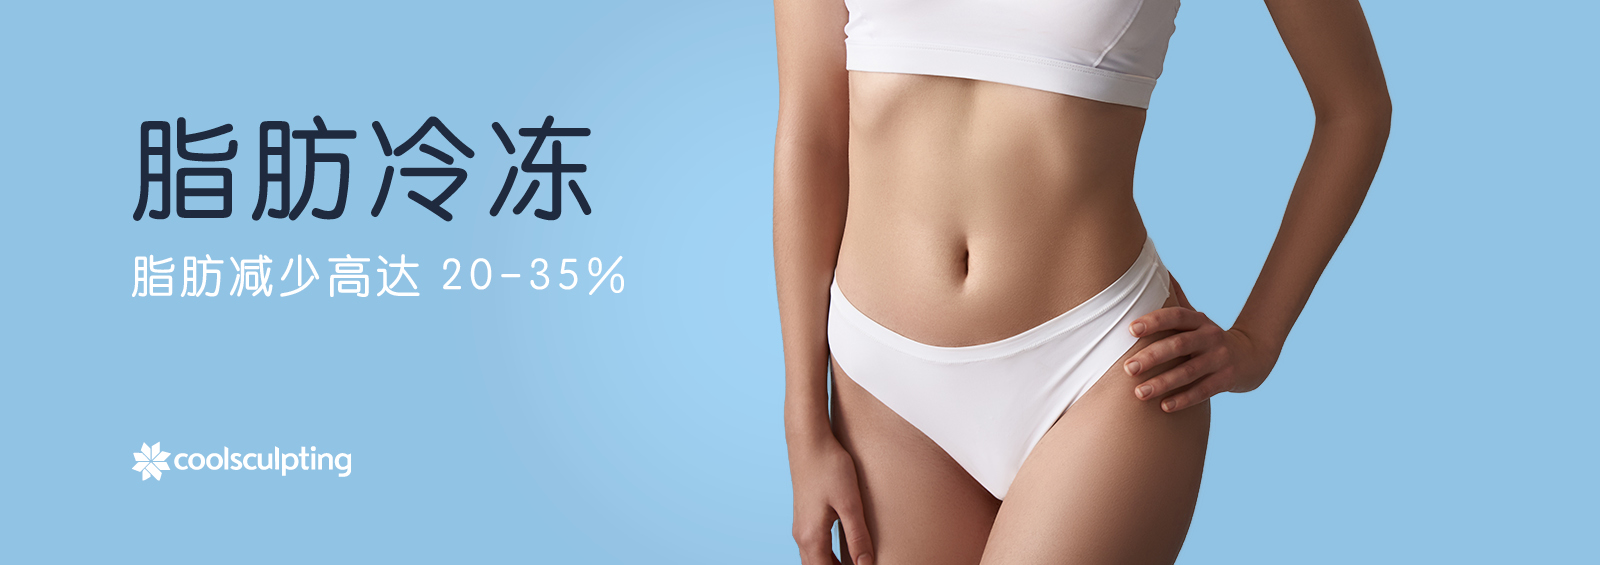 CoolSculpting Chinese Graphic